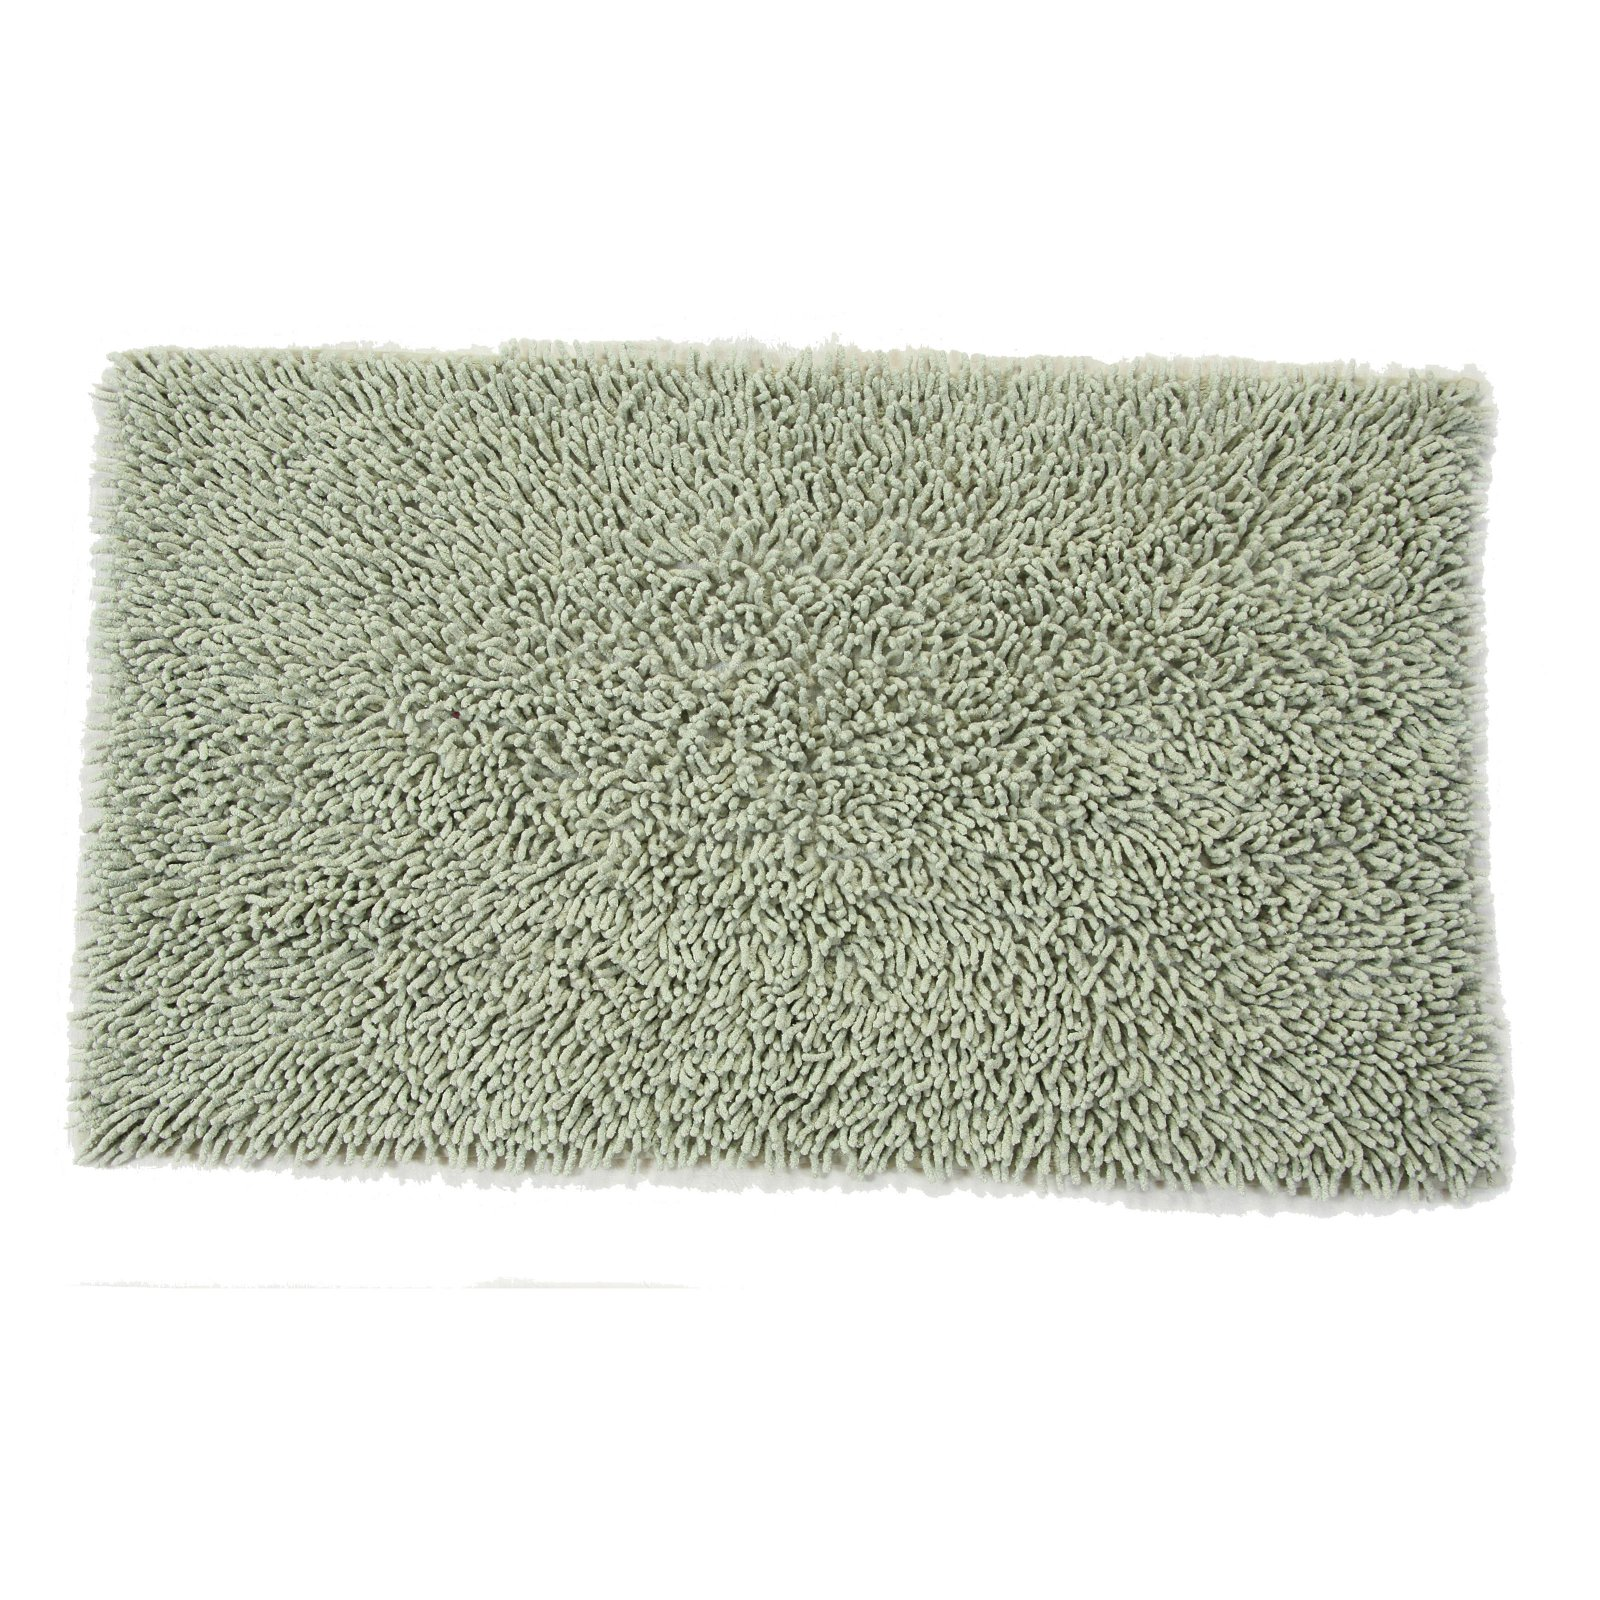 Elegance Collection Chenille Shaggy Bath Rug